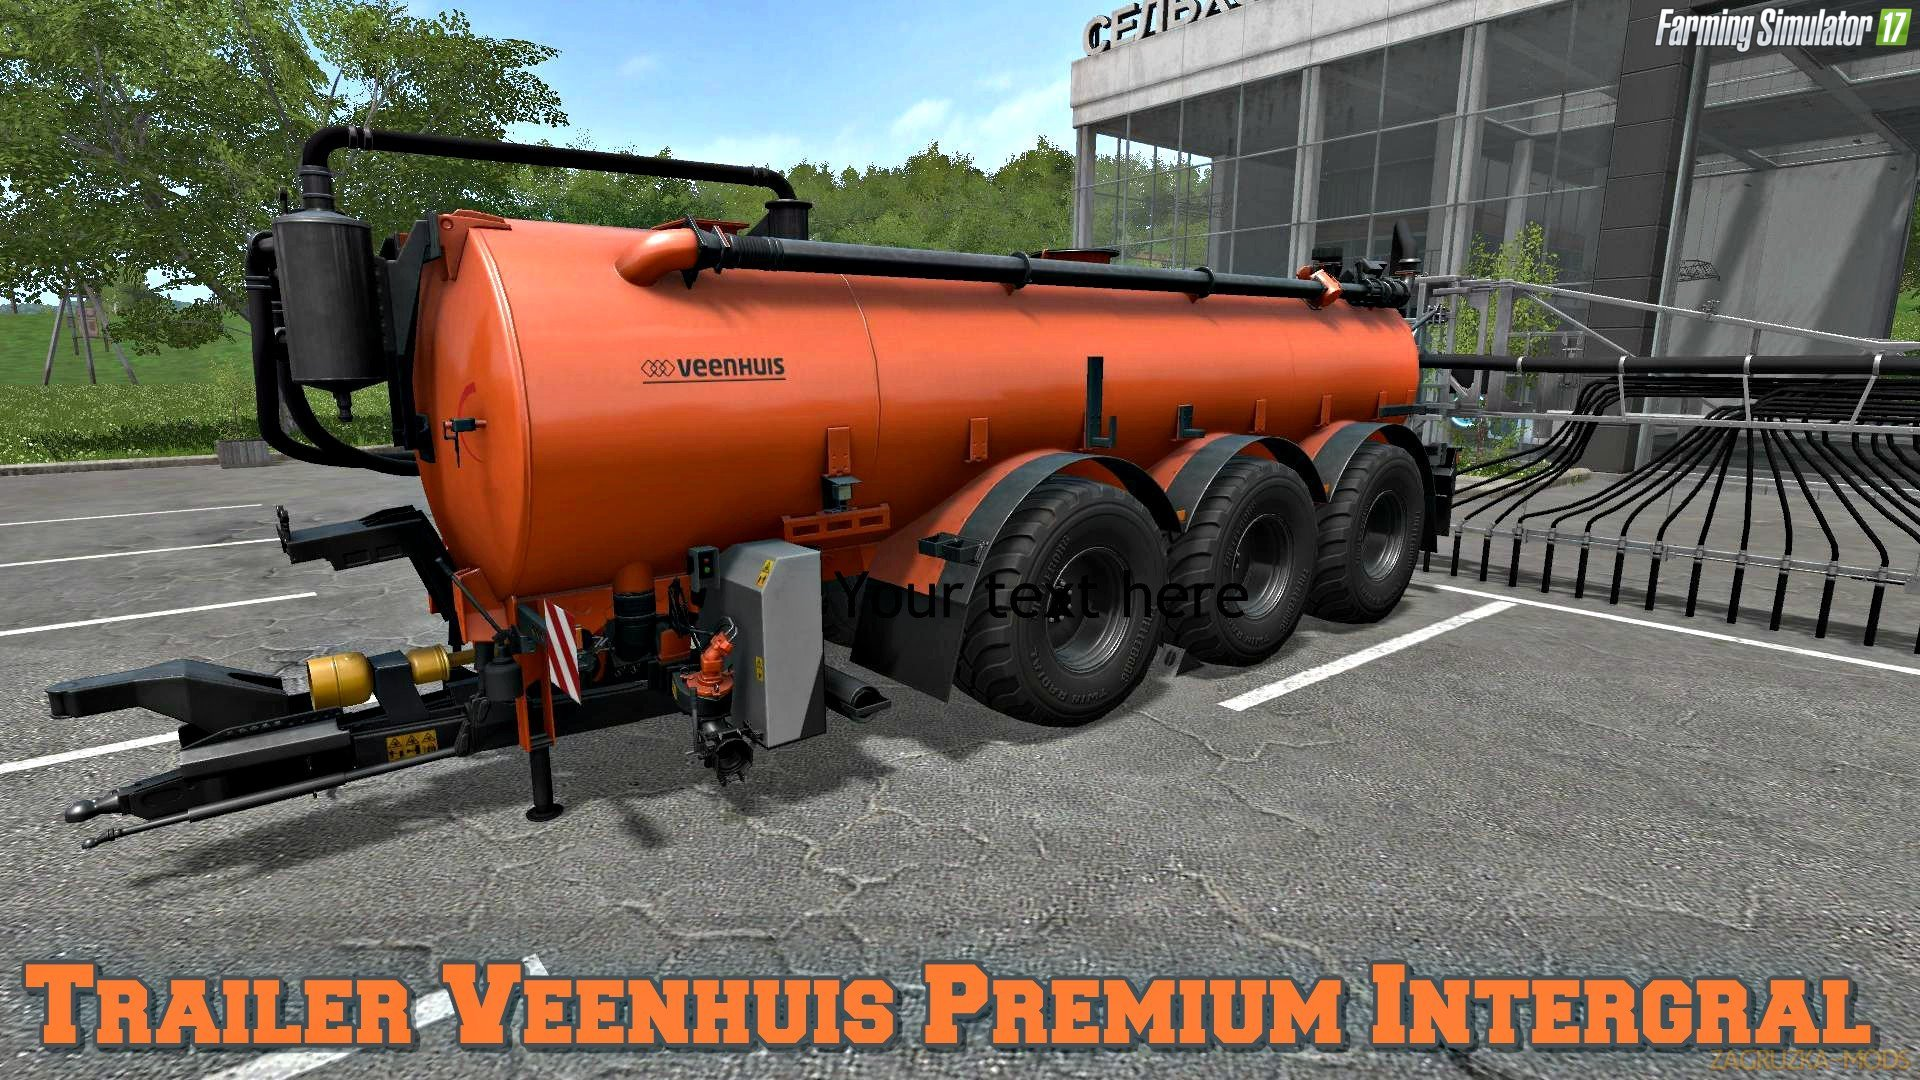 Veenhuis Premium Intergral Gamling Edition v1.0 for FS 17